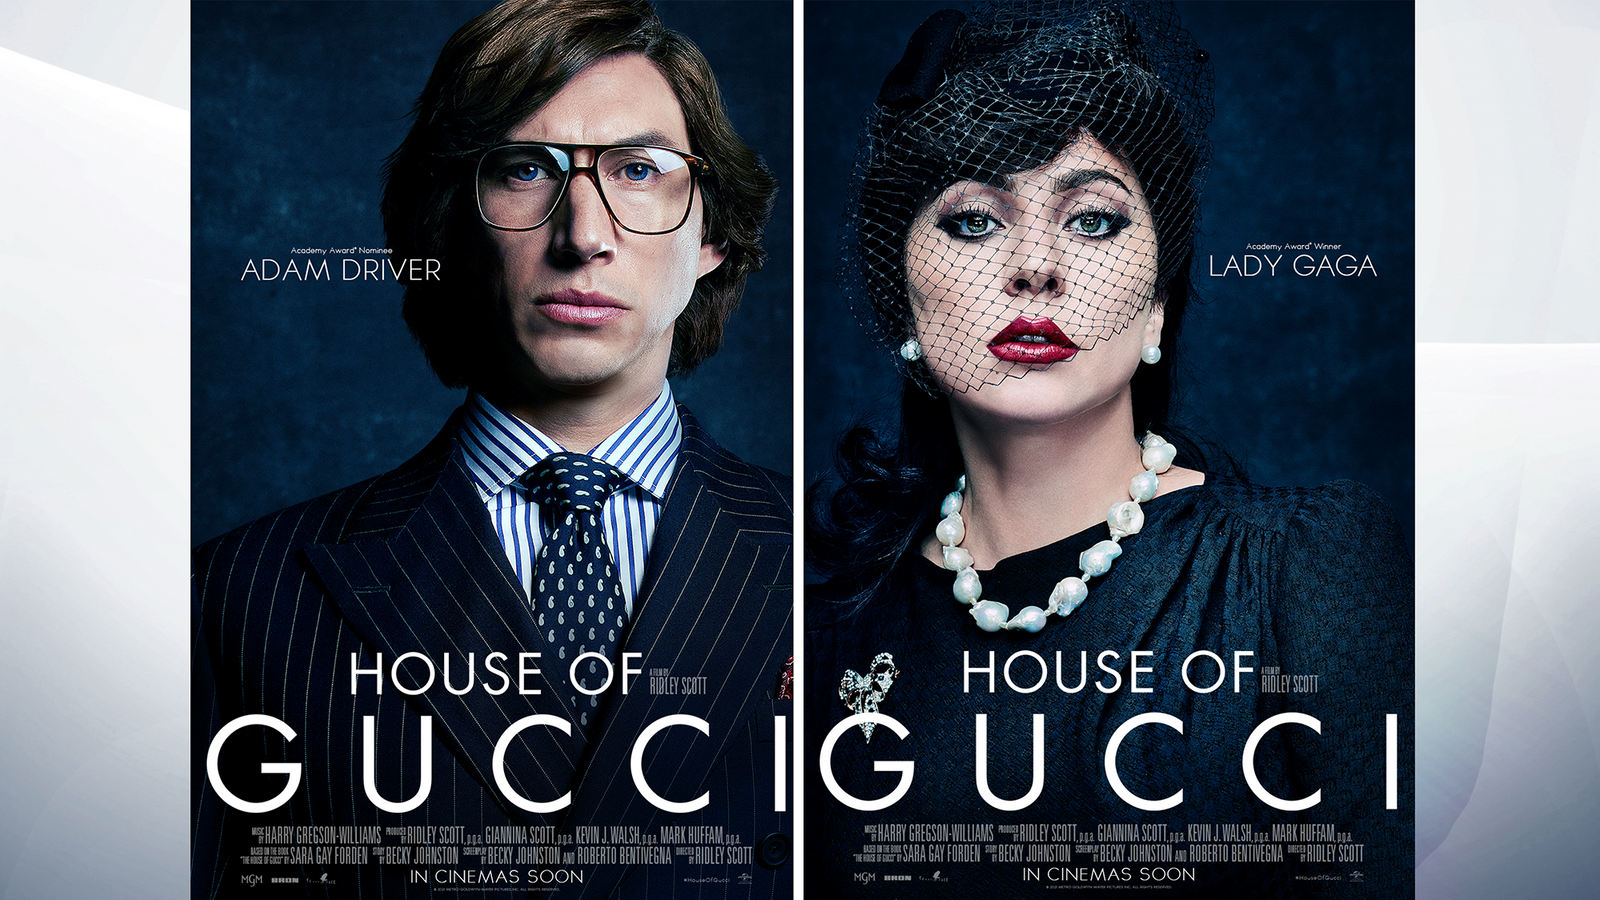 House Of Gucci trailer reveals first look at Adam Driver and Lady Gaga in film